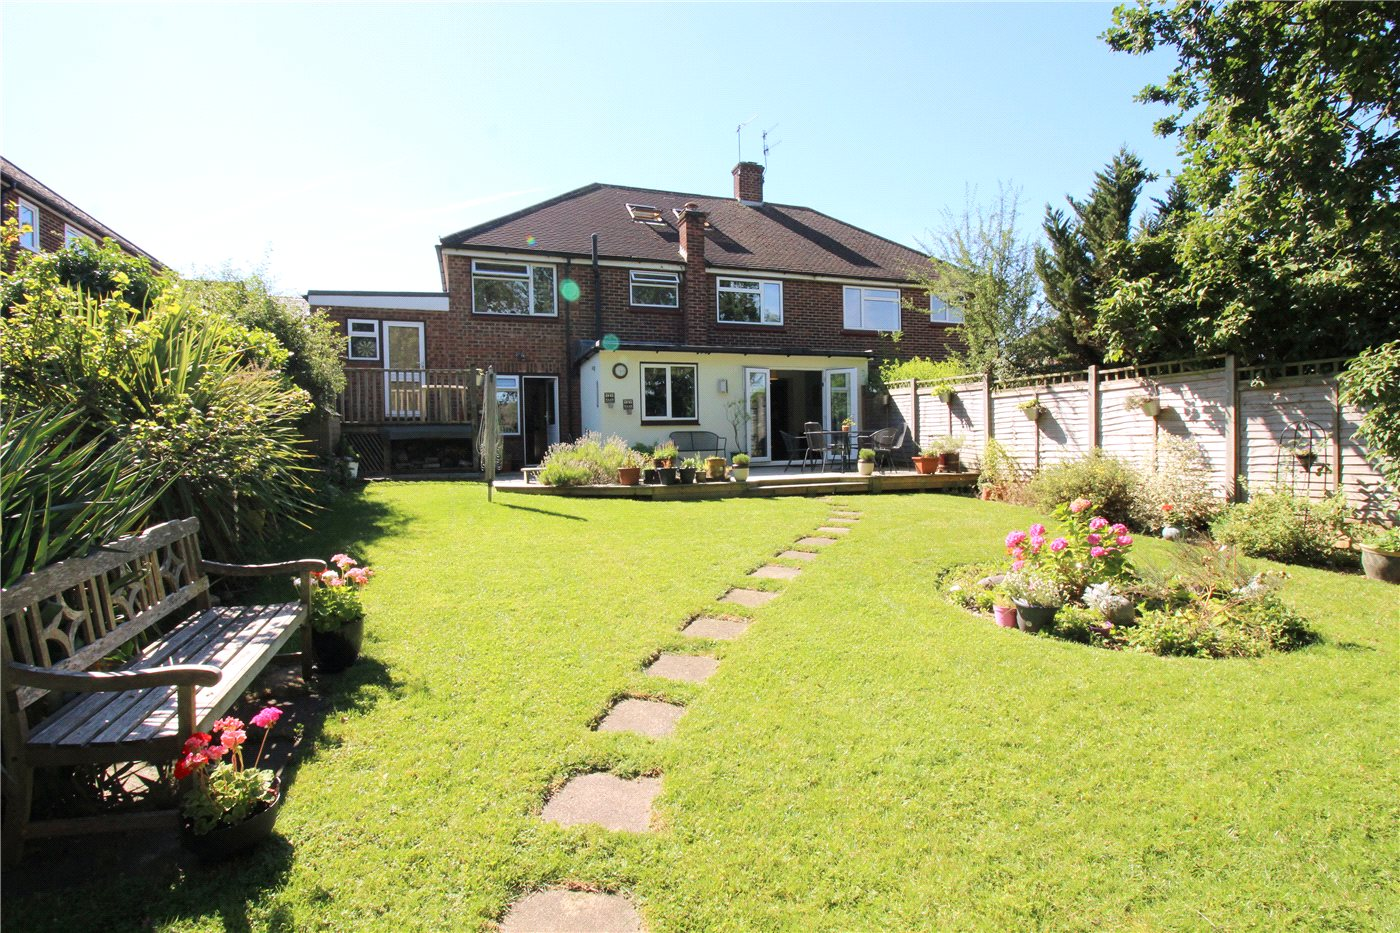 4 Bedrooms Semi Detached House for sale in Masefield Avenue, Borehamwood, Hertfordshire, WD6